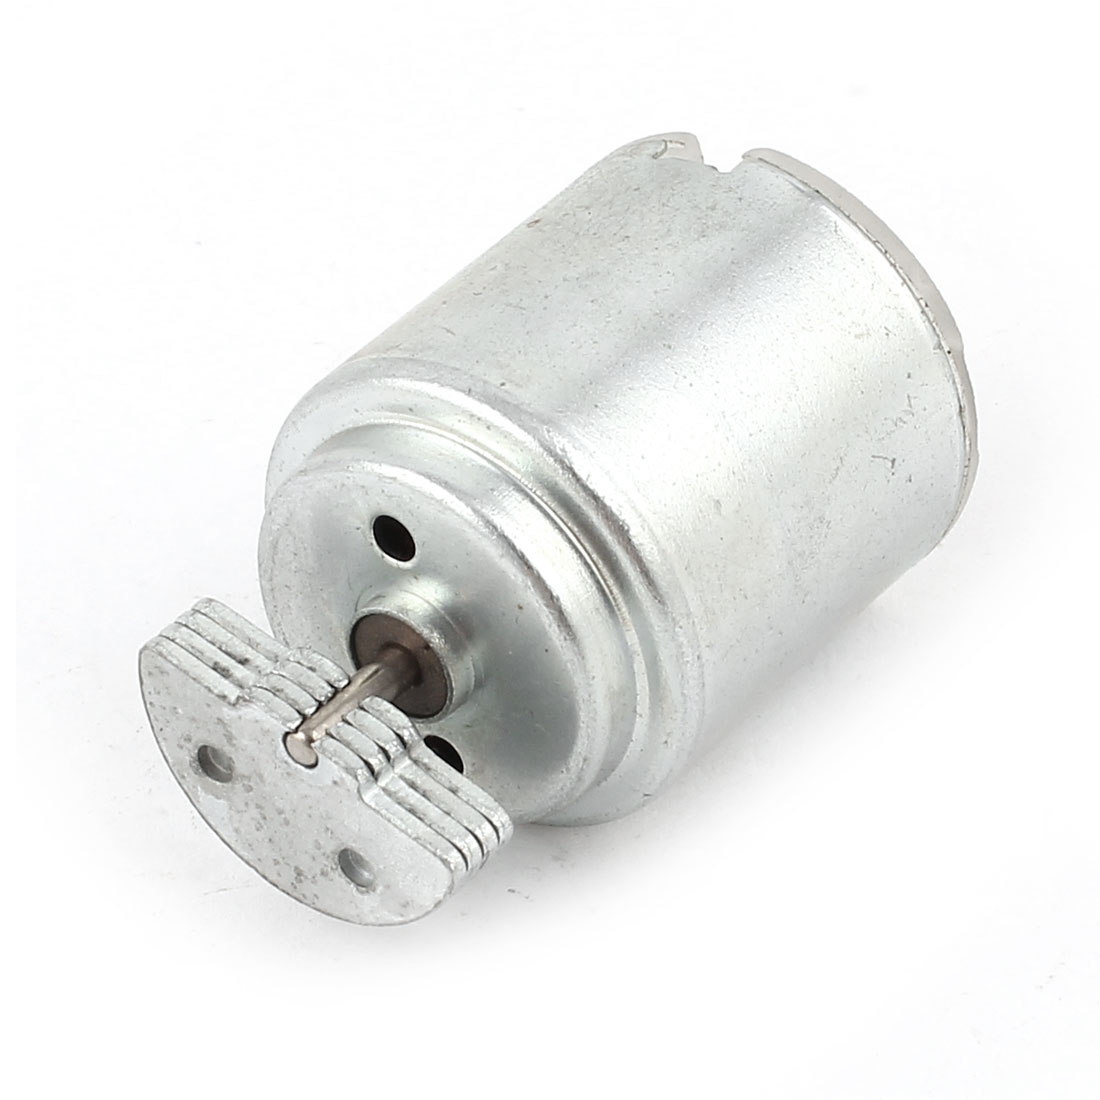 Replacement 50-1200RPM Output Speed DC 2-5V Miniature Vibration Motor